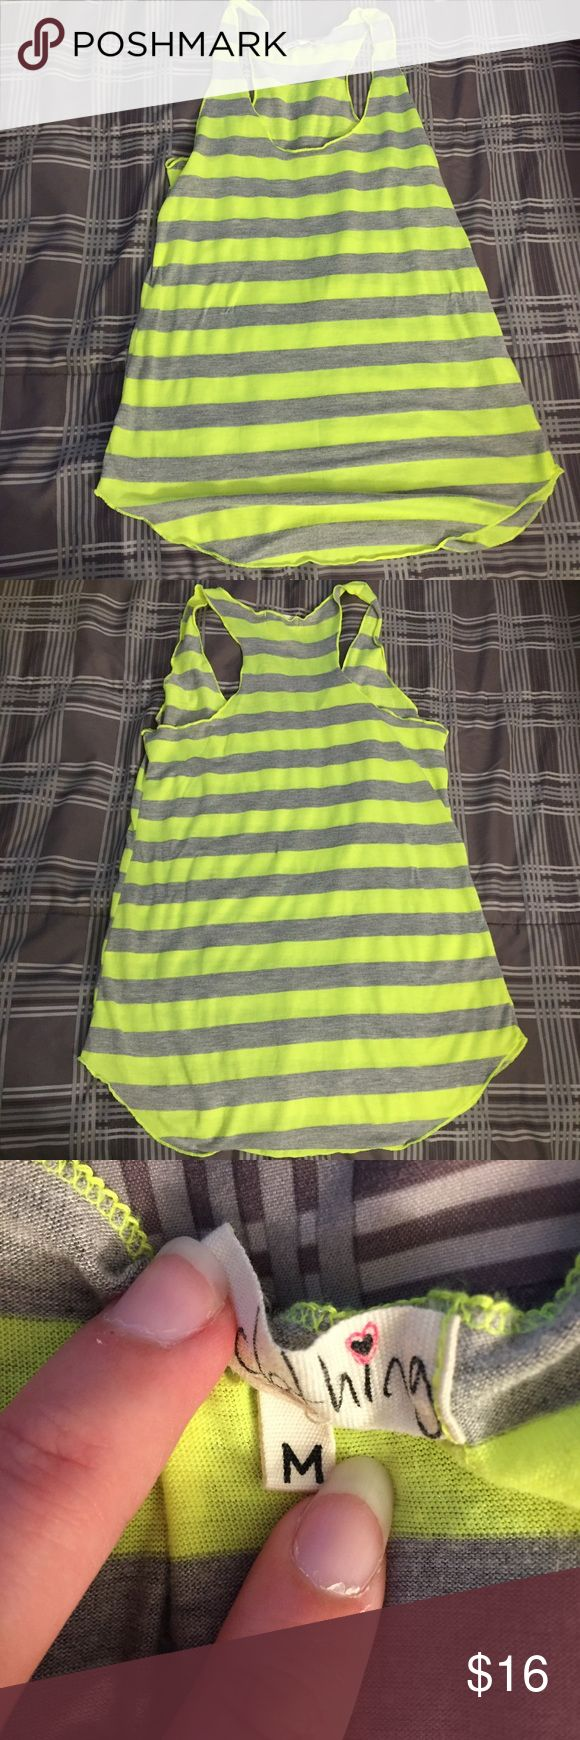 Neon yellow and gray tank Bright neon yellow and gray striped tank top. Super soft and comfy one clothing Tops Tank Tops